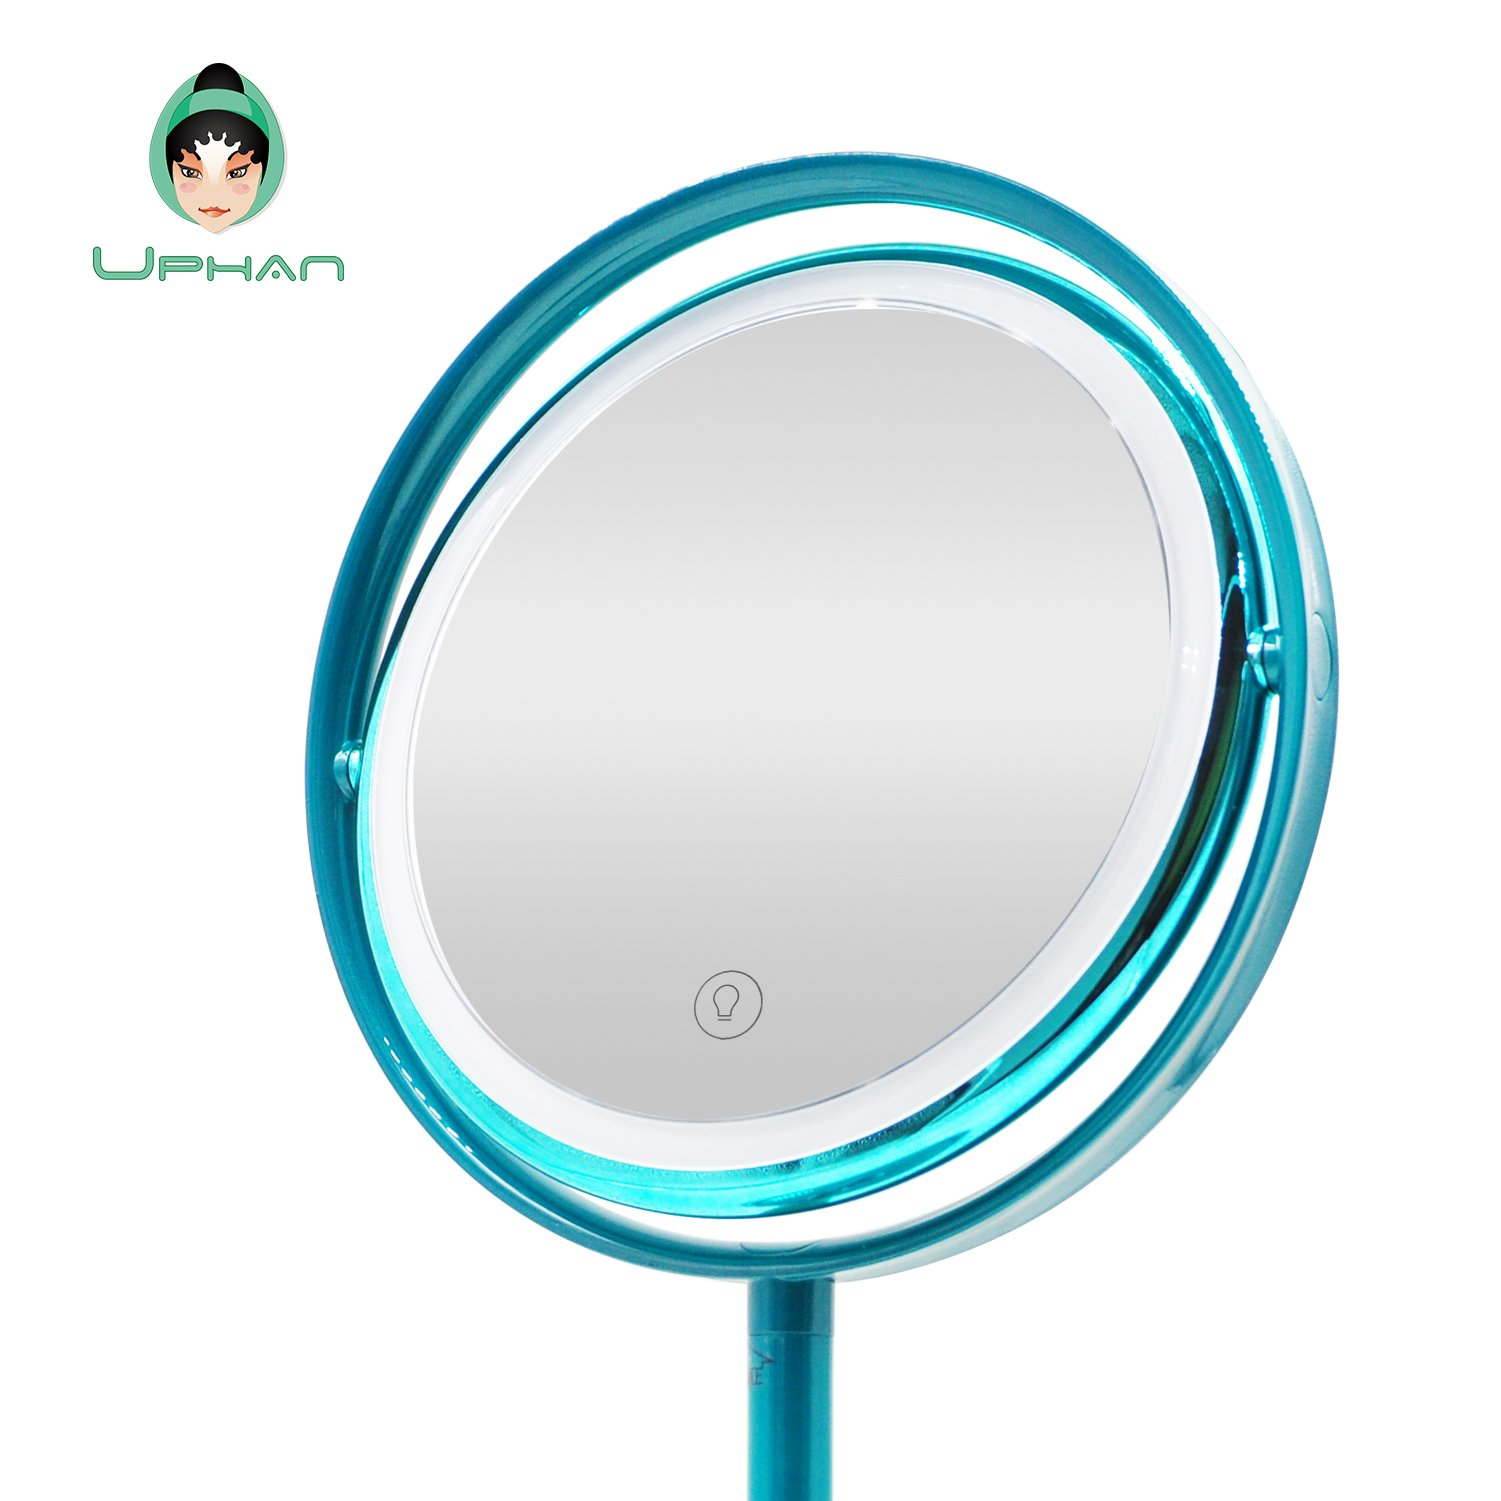 UPHAN U7 Surgical Grade Lighted Makeup Mirrors, 7 inch Luxury Dual Light Color Dimming Light with 5X Detail Mirror, Malachite green ¡­ (Surgical Grade) by UPHAN (Image #2)